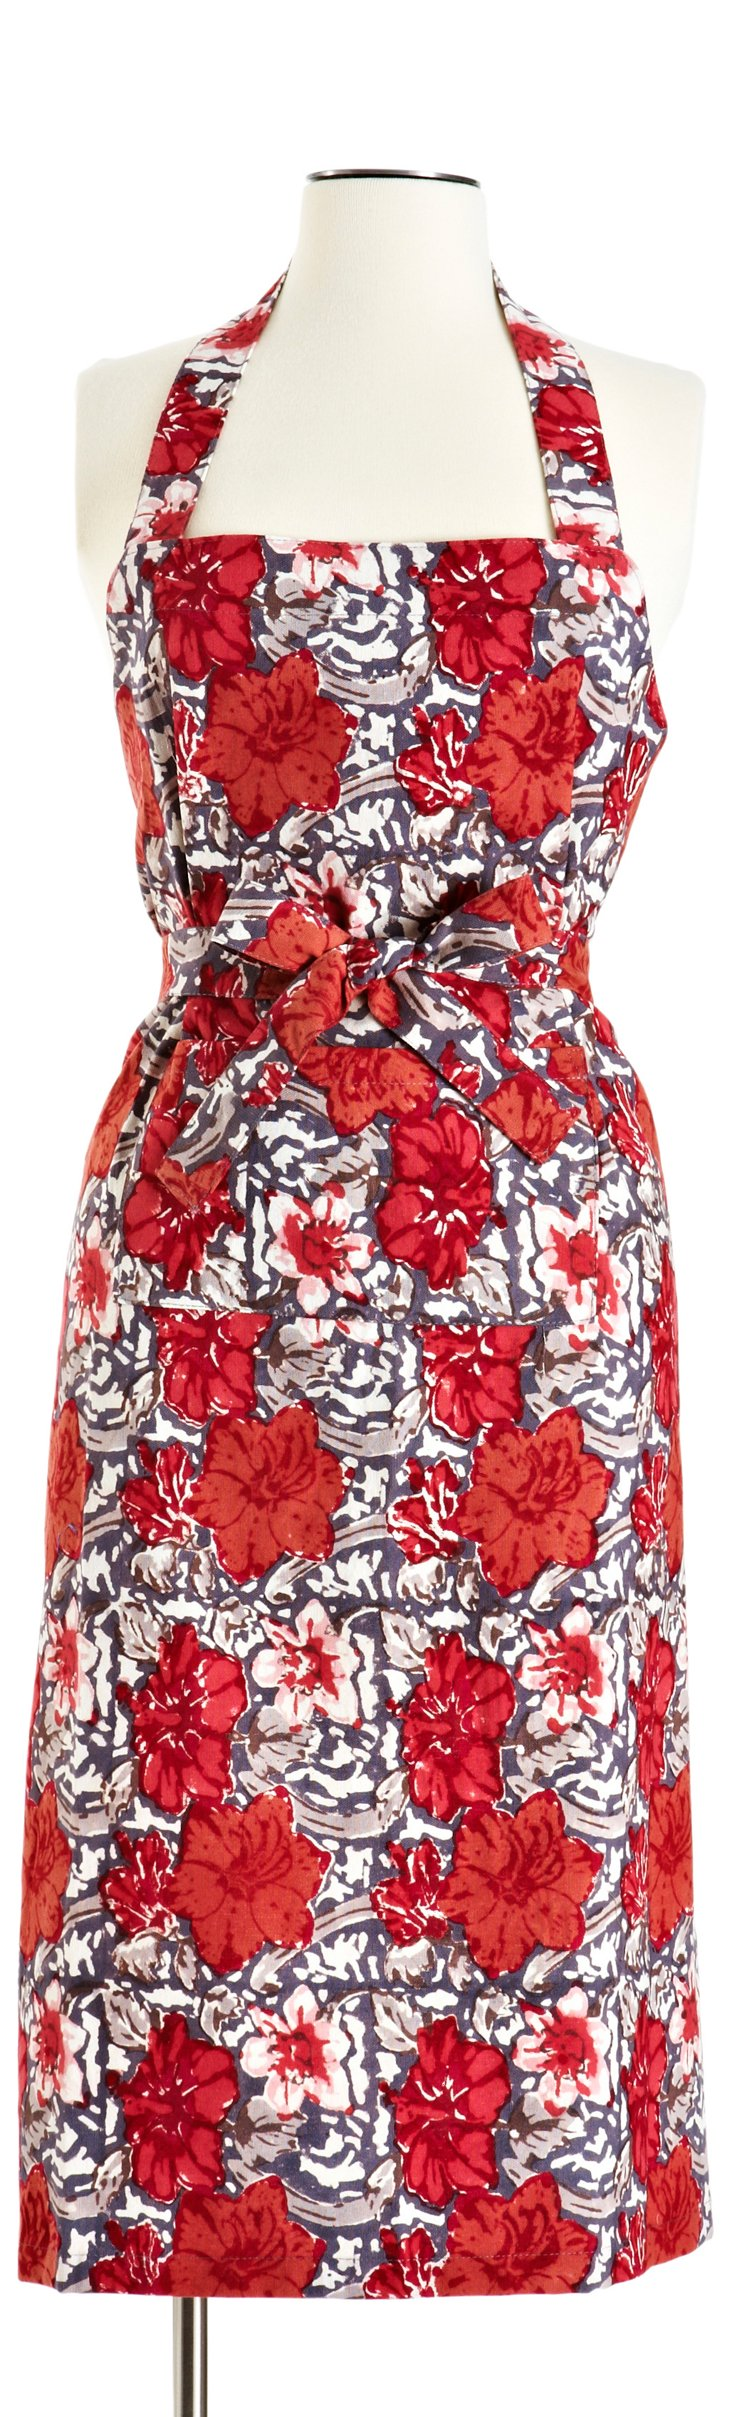 Exotic Flower Apron, Gray/Red